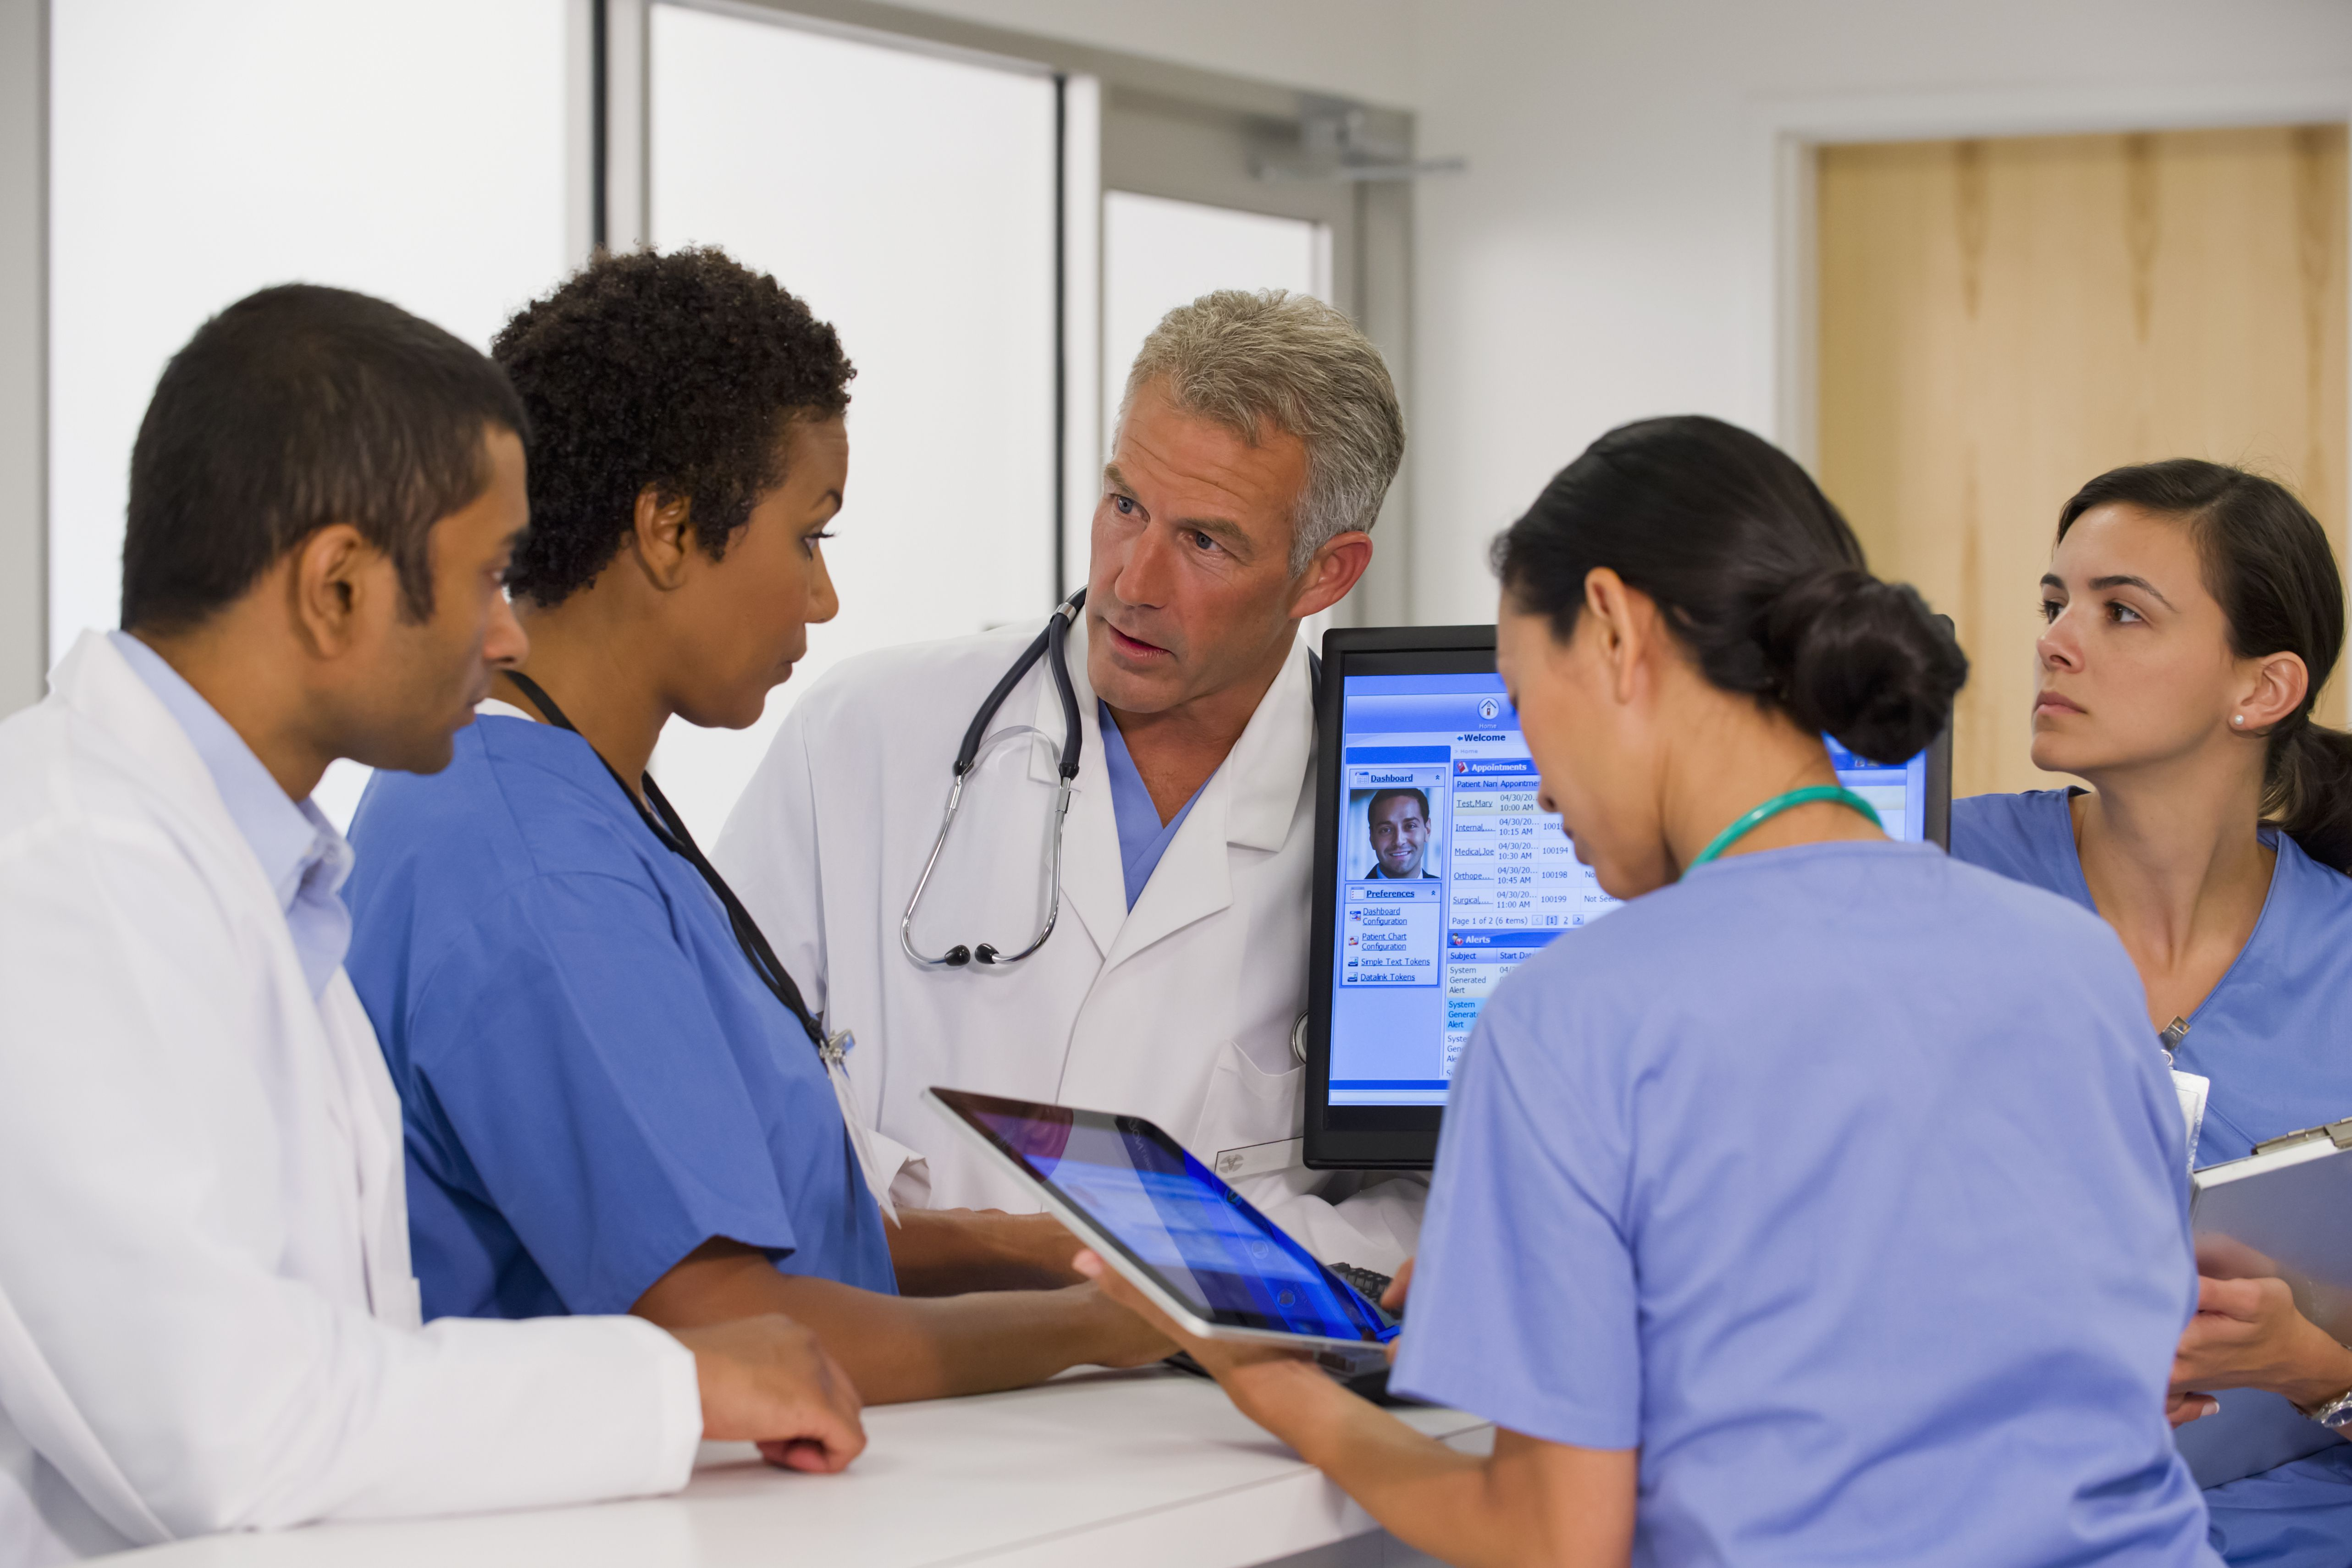 Your Doctor's Medical School Training and Experience